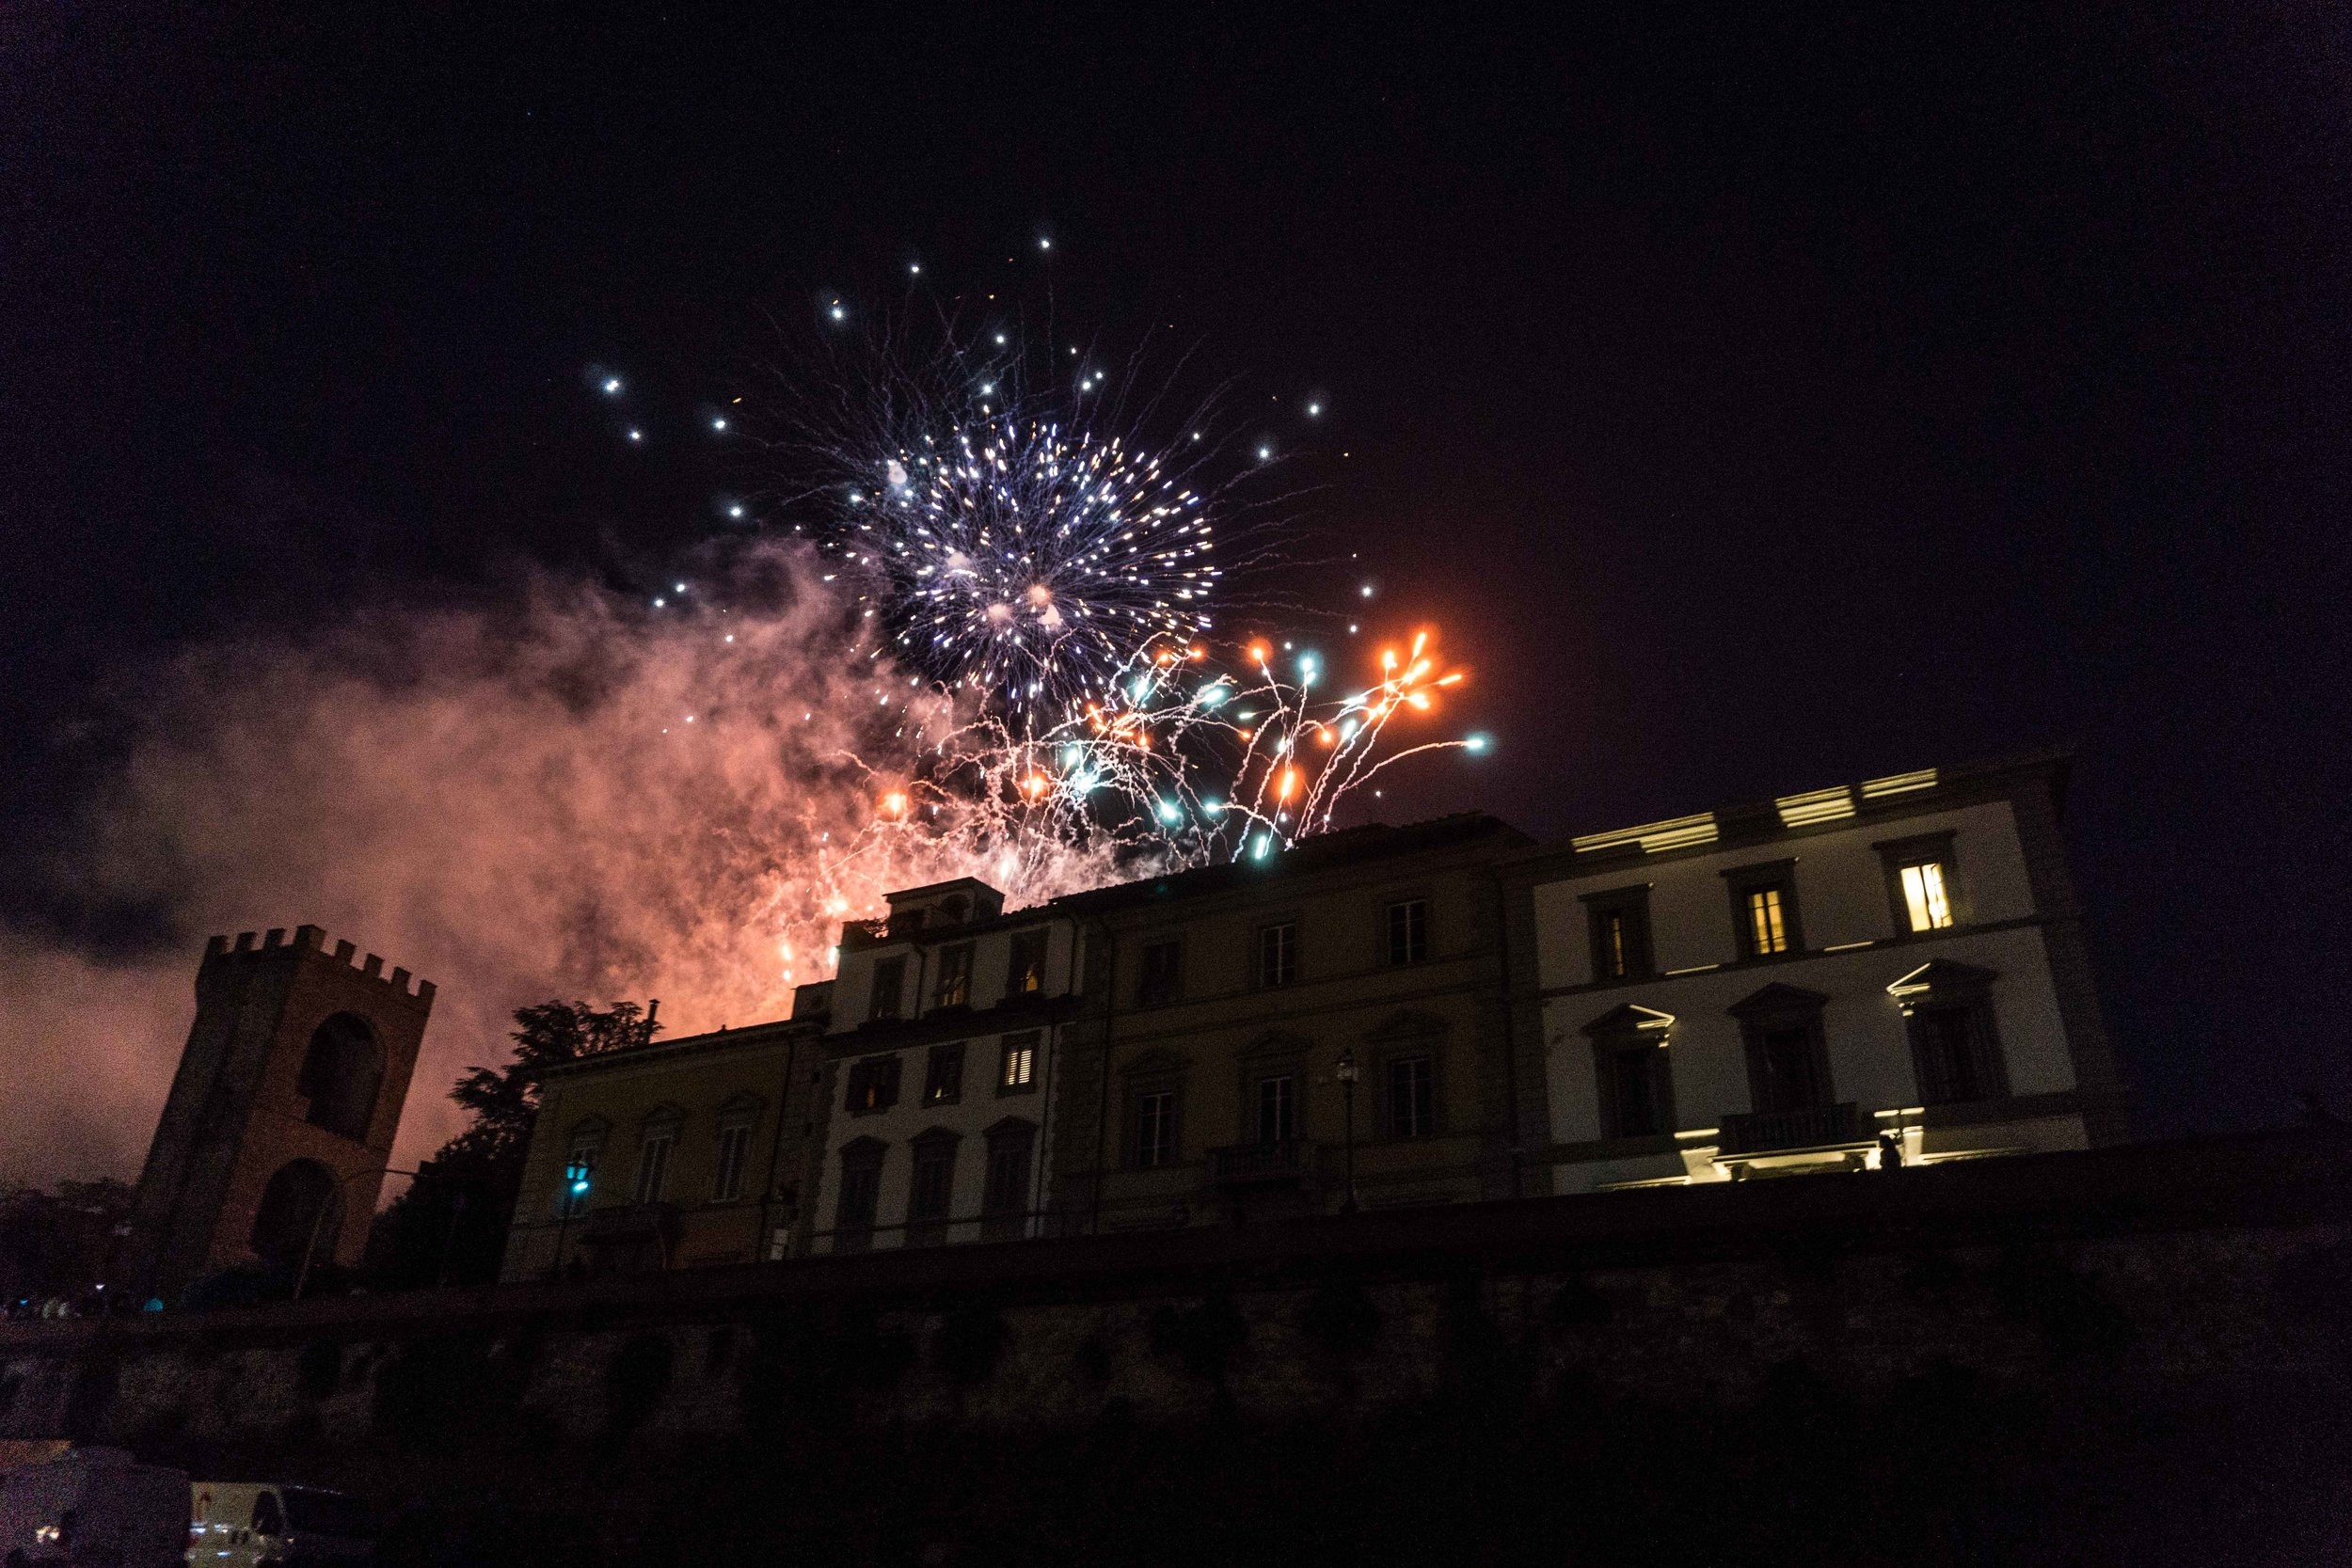 San Giovanni fireworks (we pretended they were for the 4th of July)